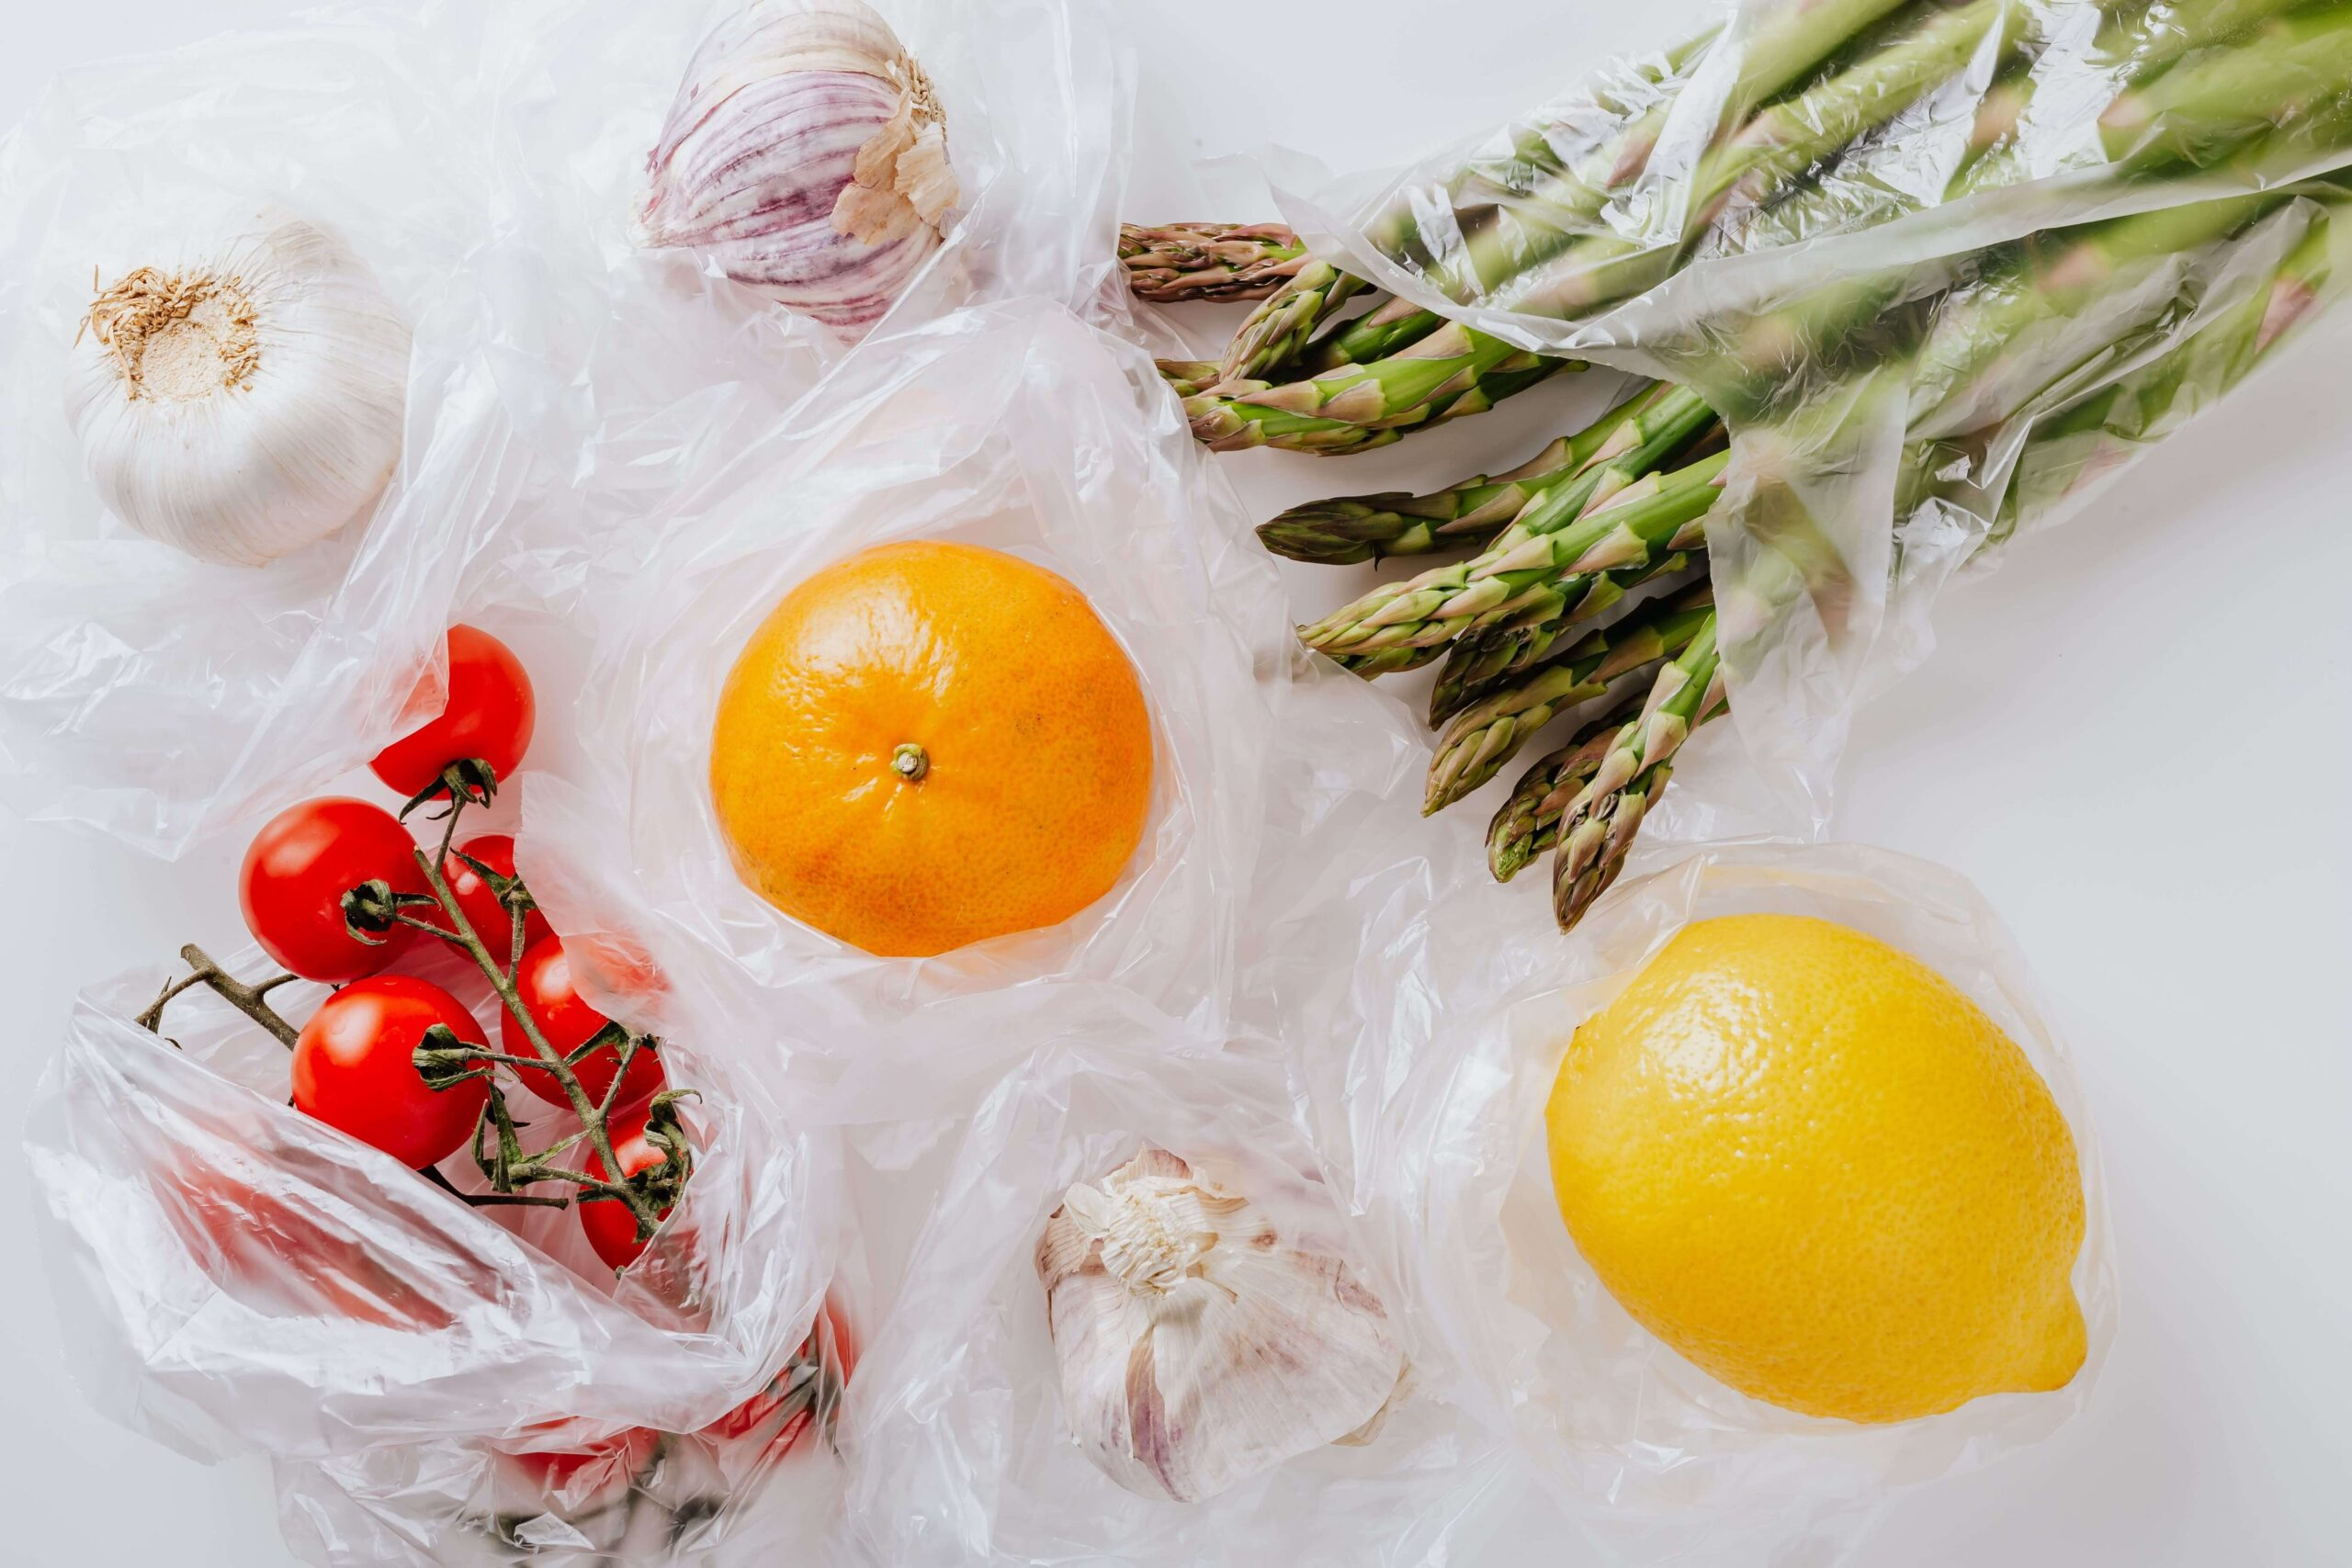 Variety of food in polythene bags